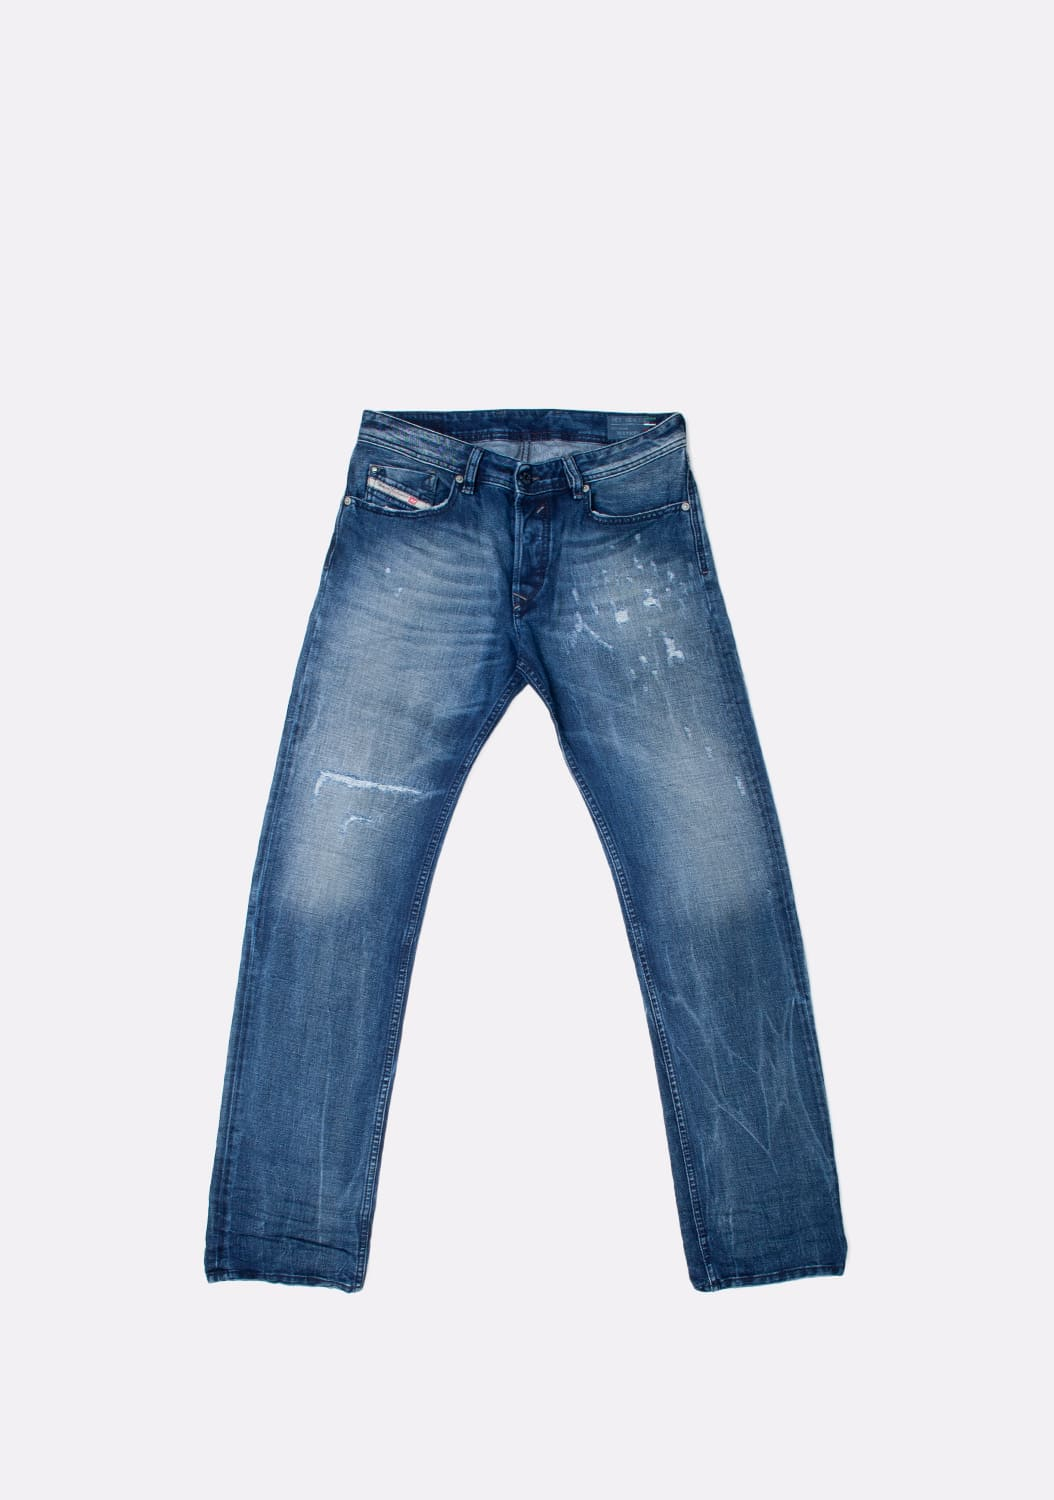 Diesel-Waykee-0839E-Regular-Straight-dydis-30-34 (2)